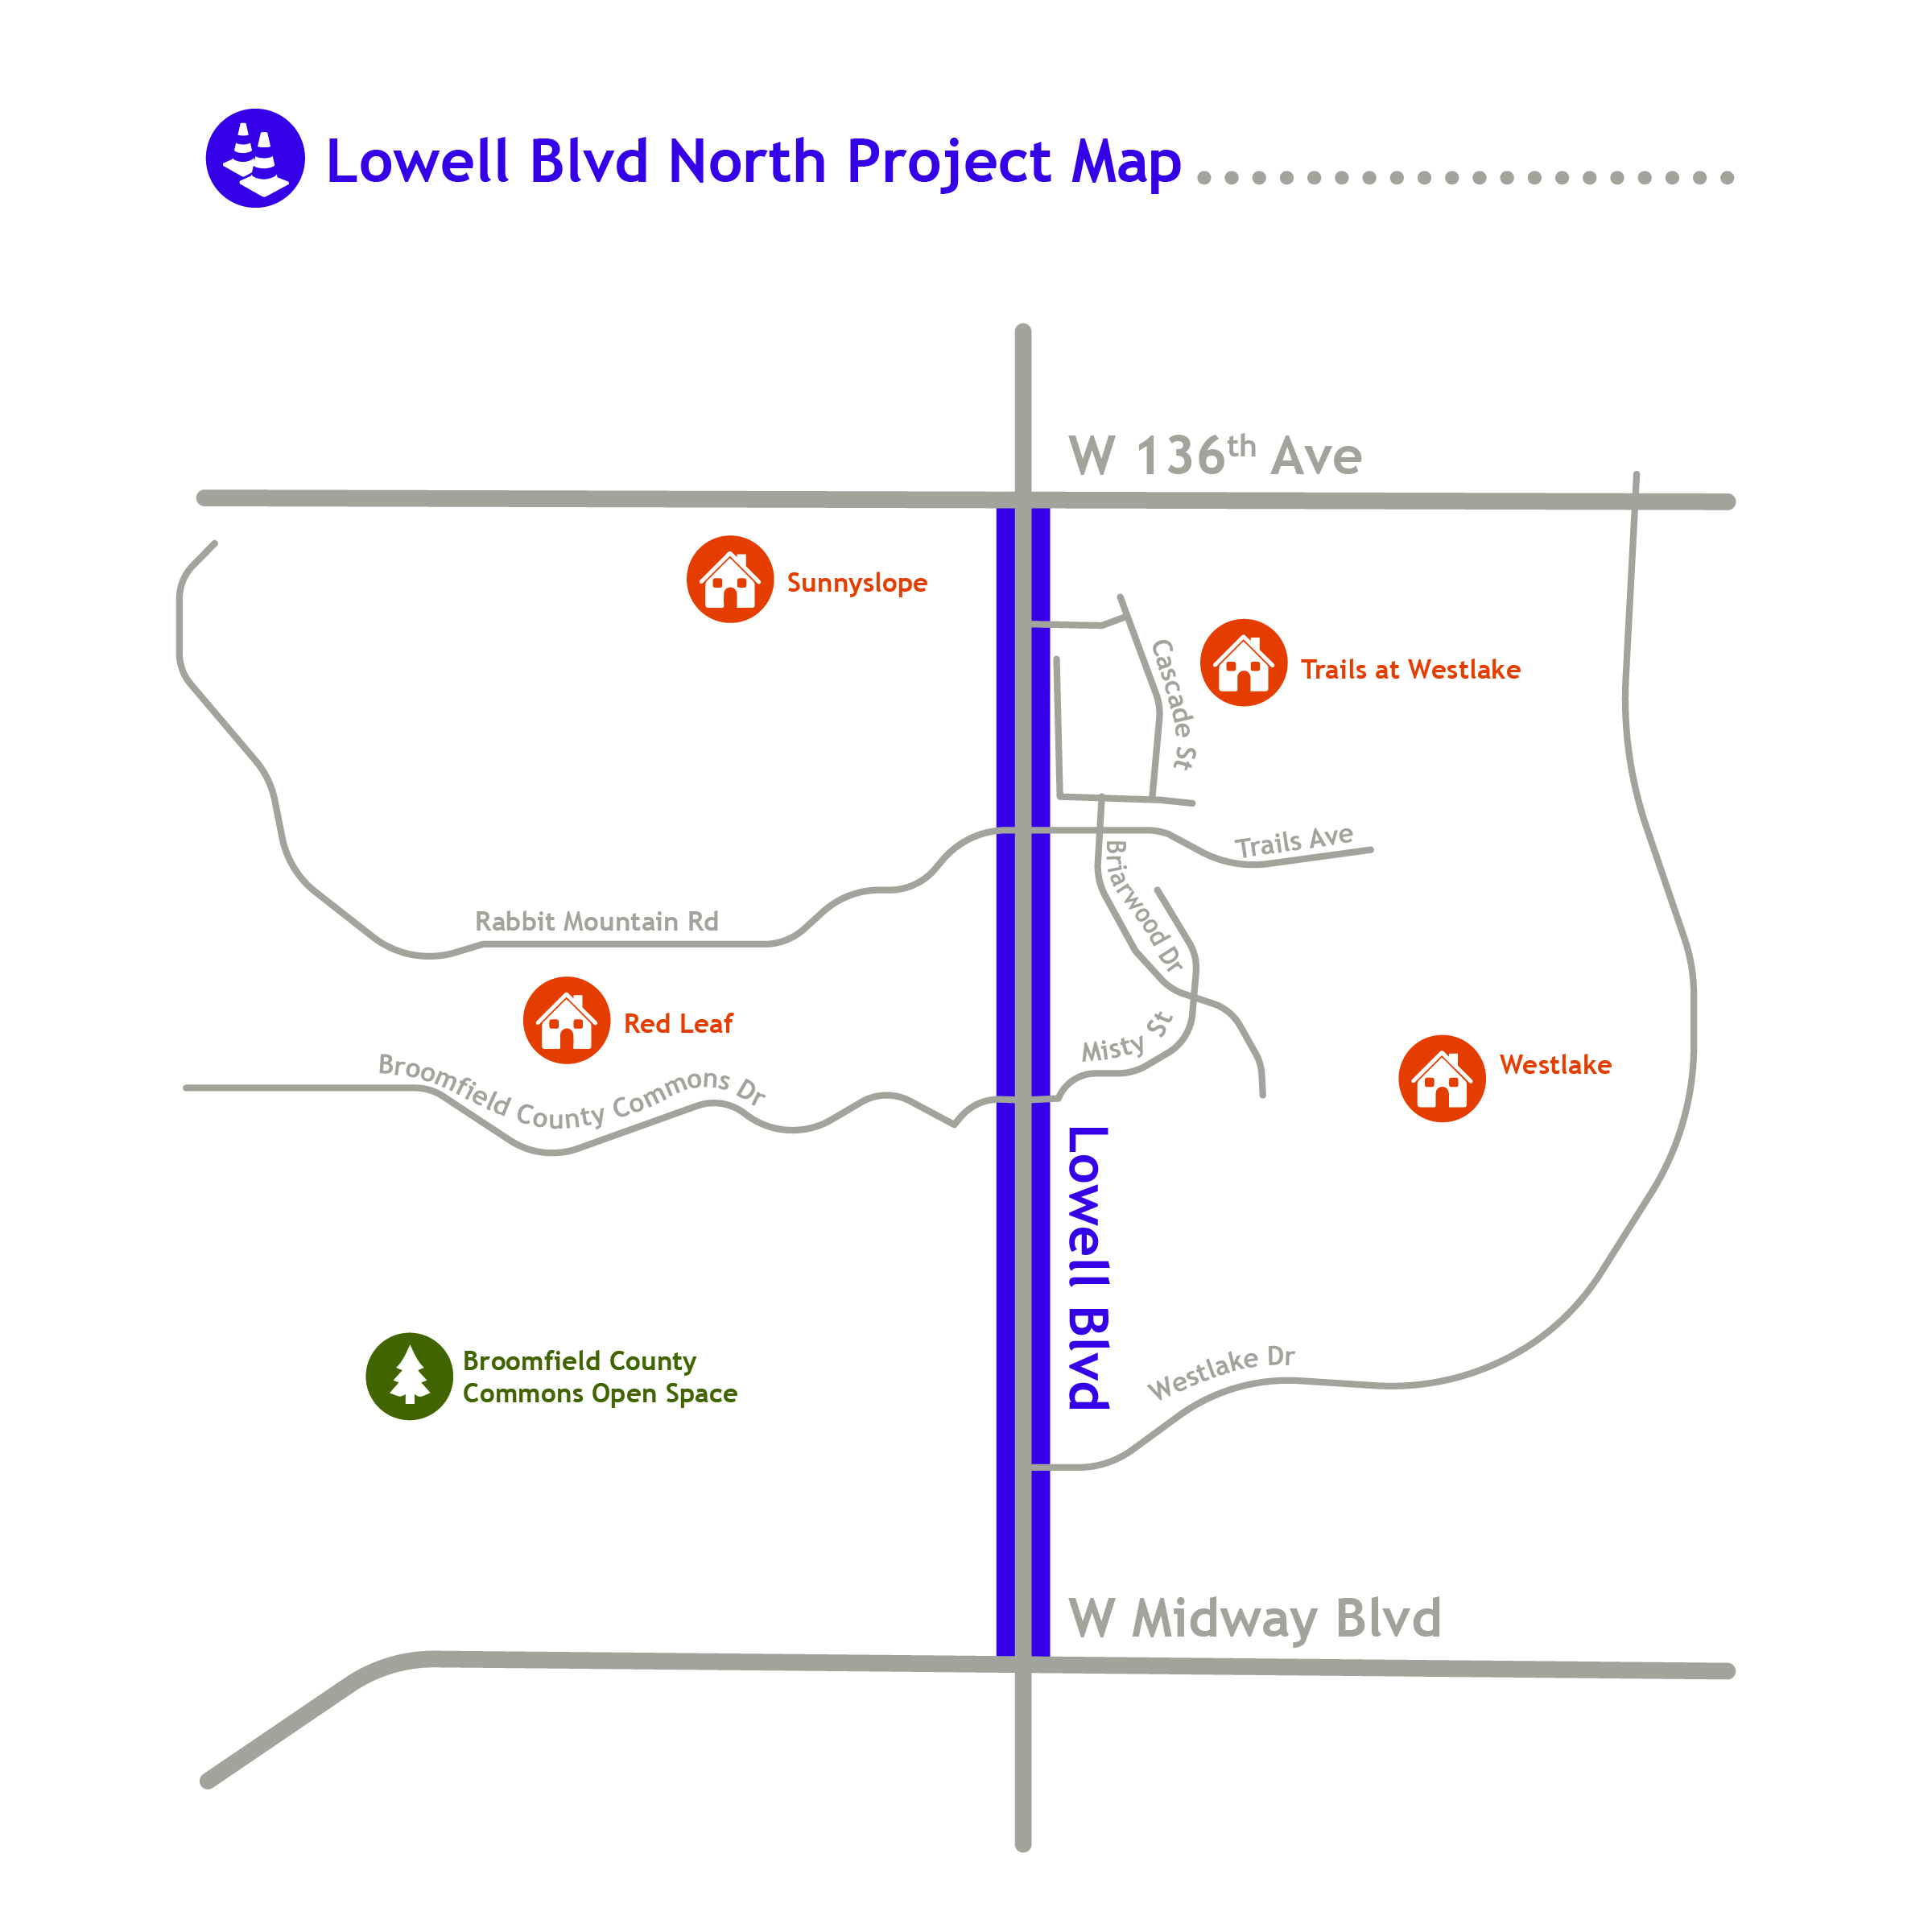 Lowell Blvd. North Project Map